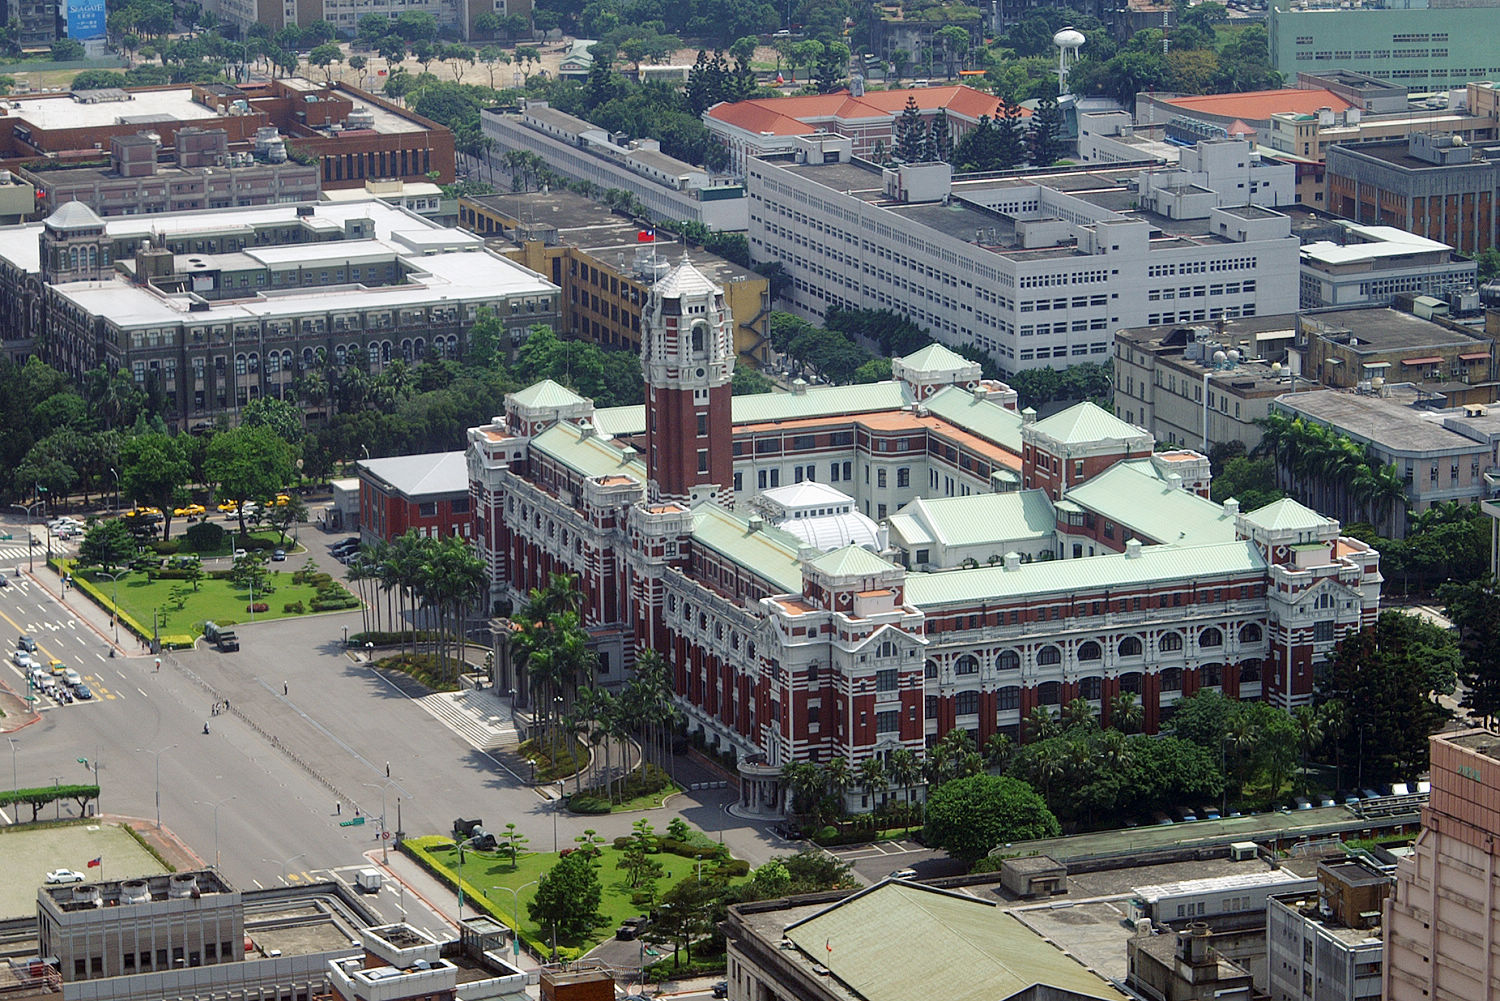 The ROC Presidential Office Building was originally built as the Office of the Governor-General by the Japanese government.